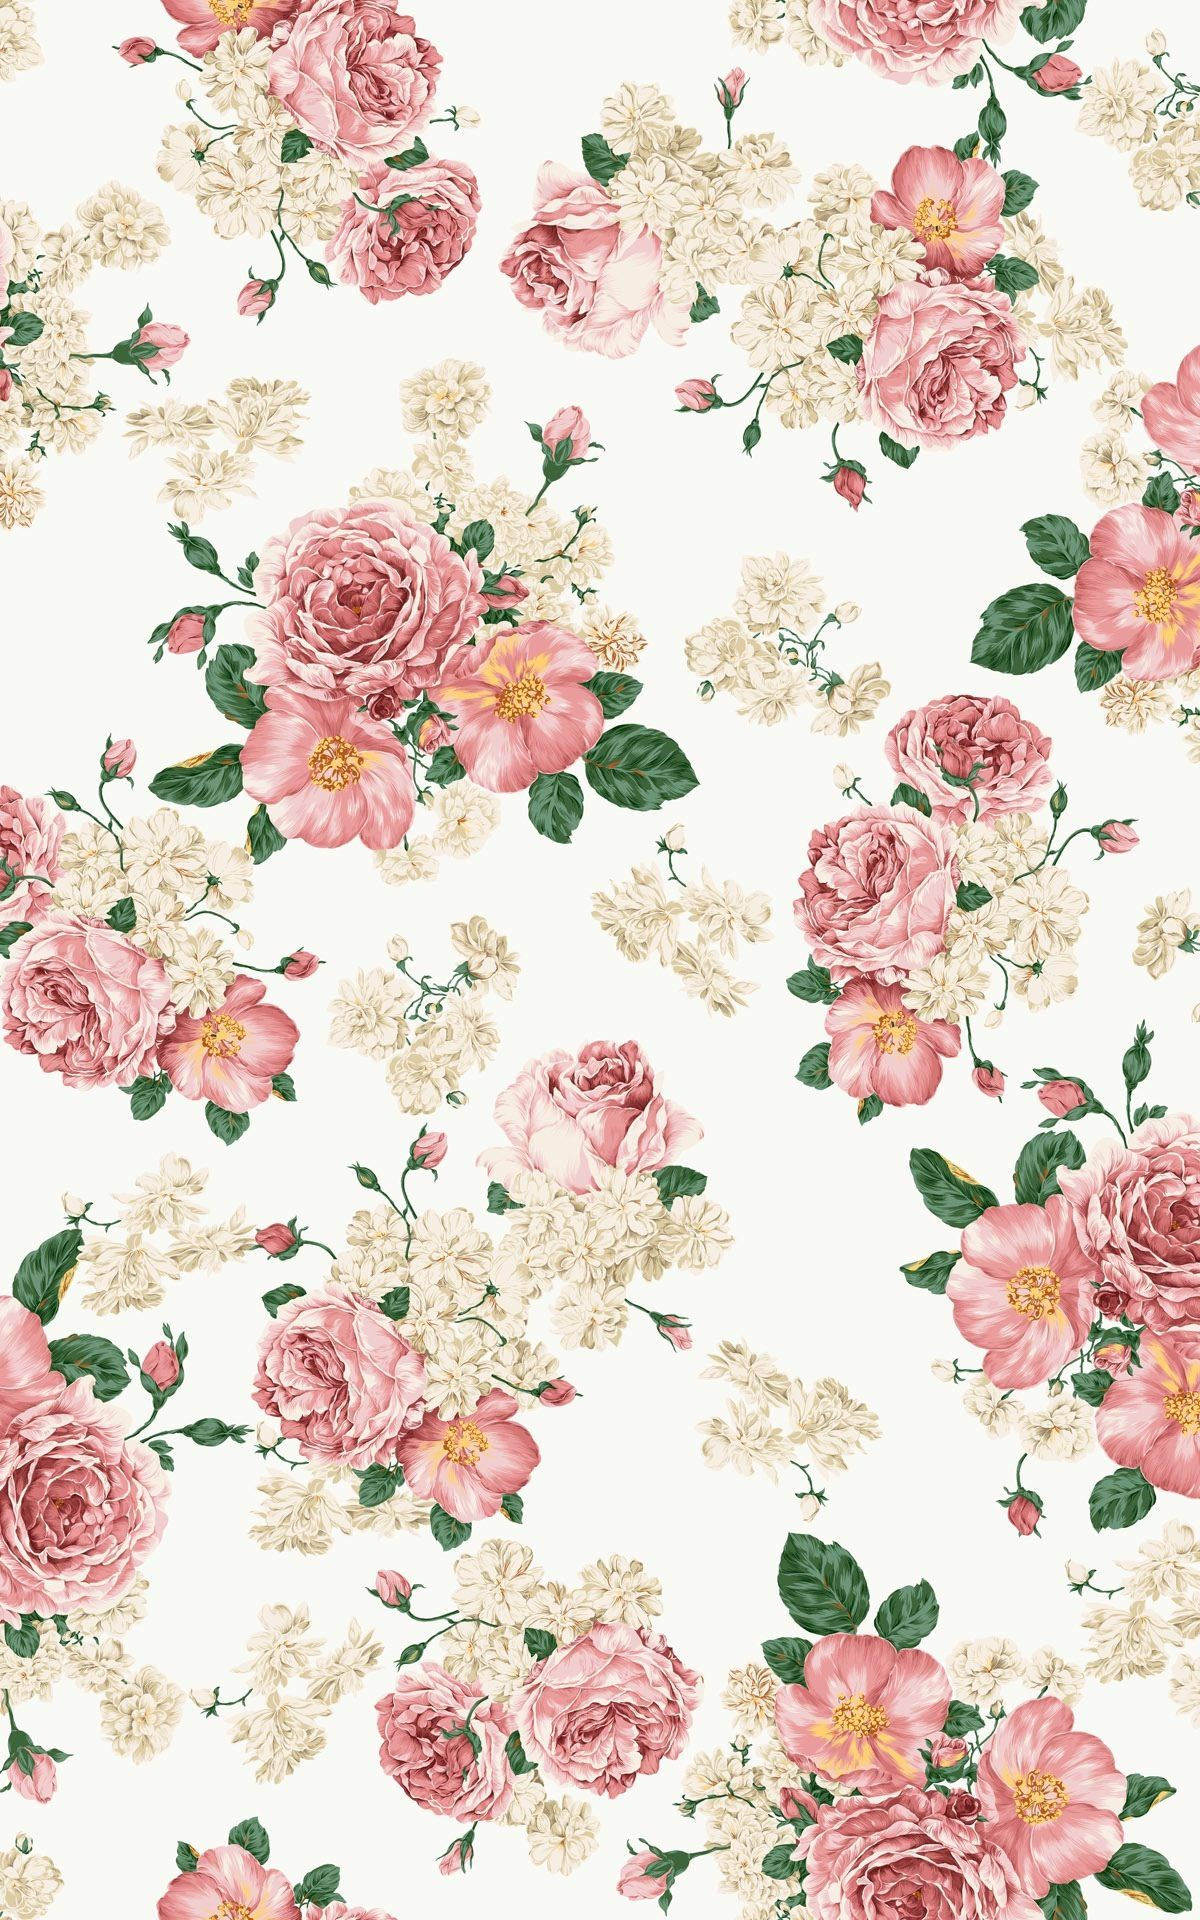 High Res Vintage Pink Flower Wallpaper Fondo De Pantalla Flor